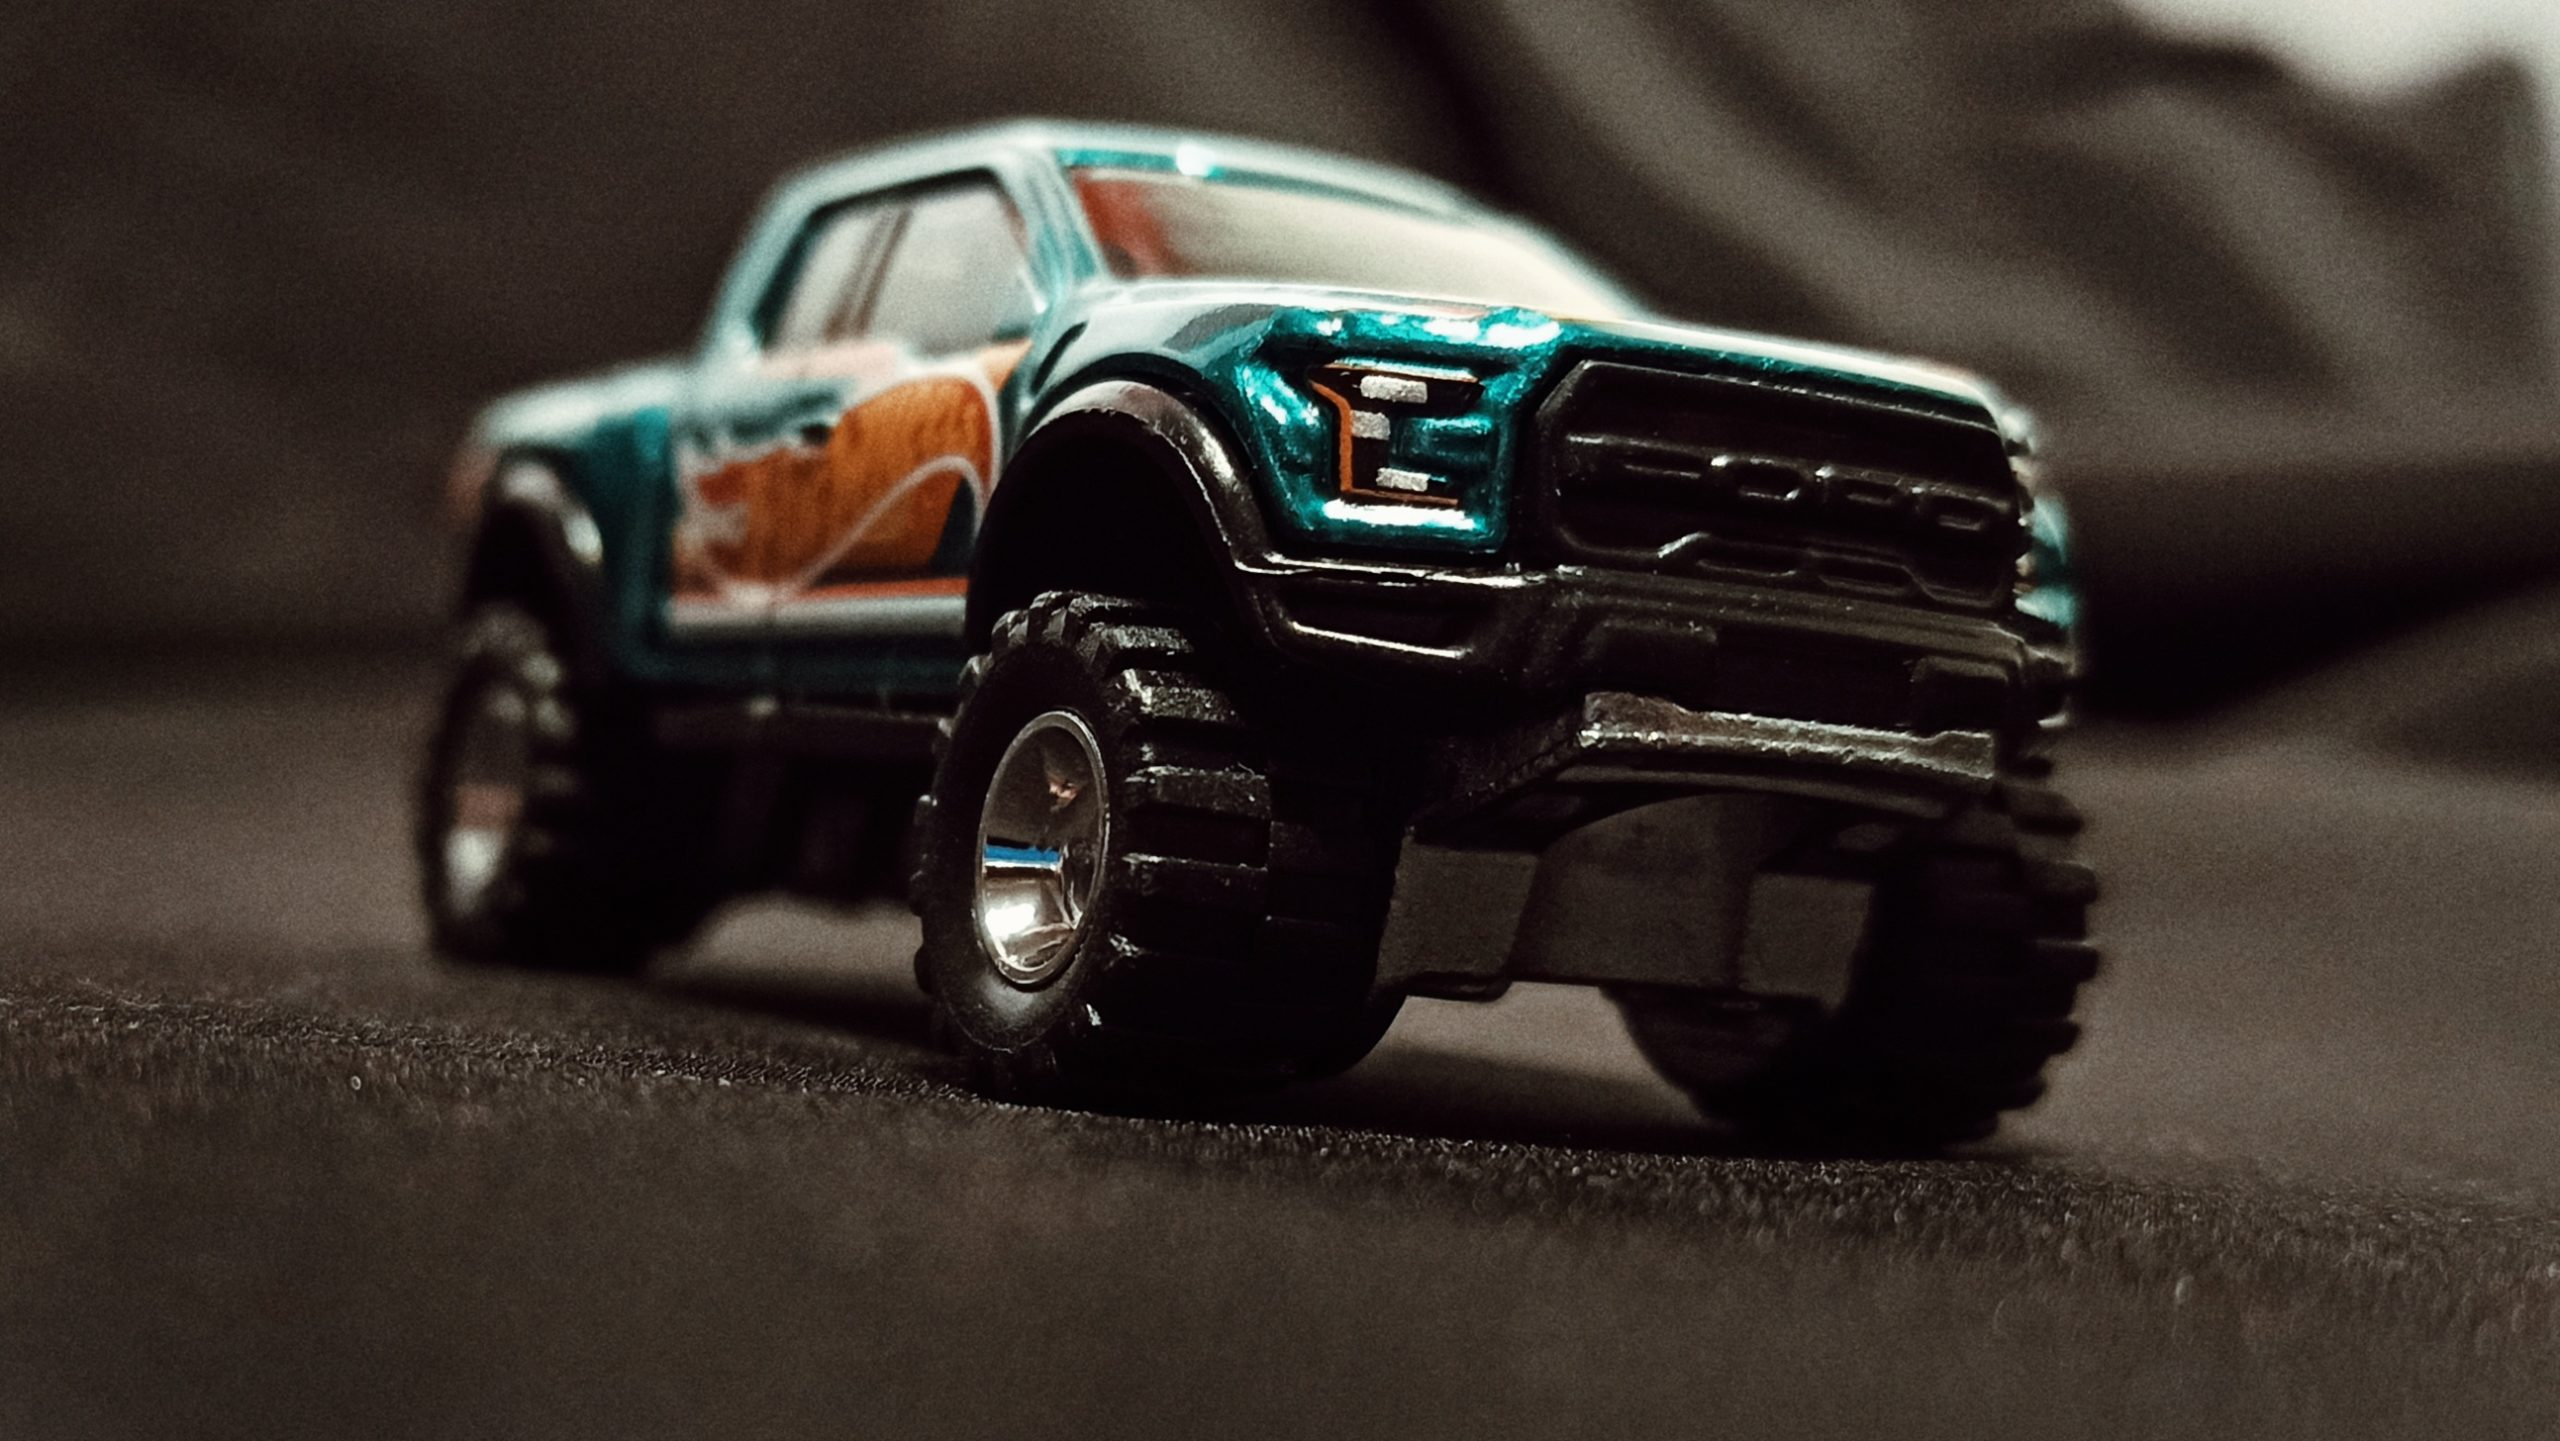 Hot Wheels '17 Ford F-150 Raptor (GTD72) 2021 Collector Edition (Dollar General Mail-in) spectraflame aqua green front angle